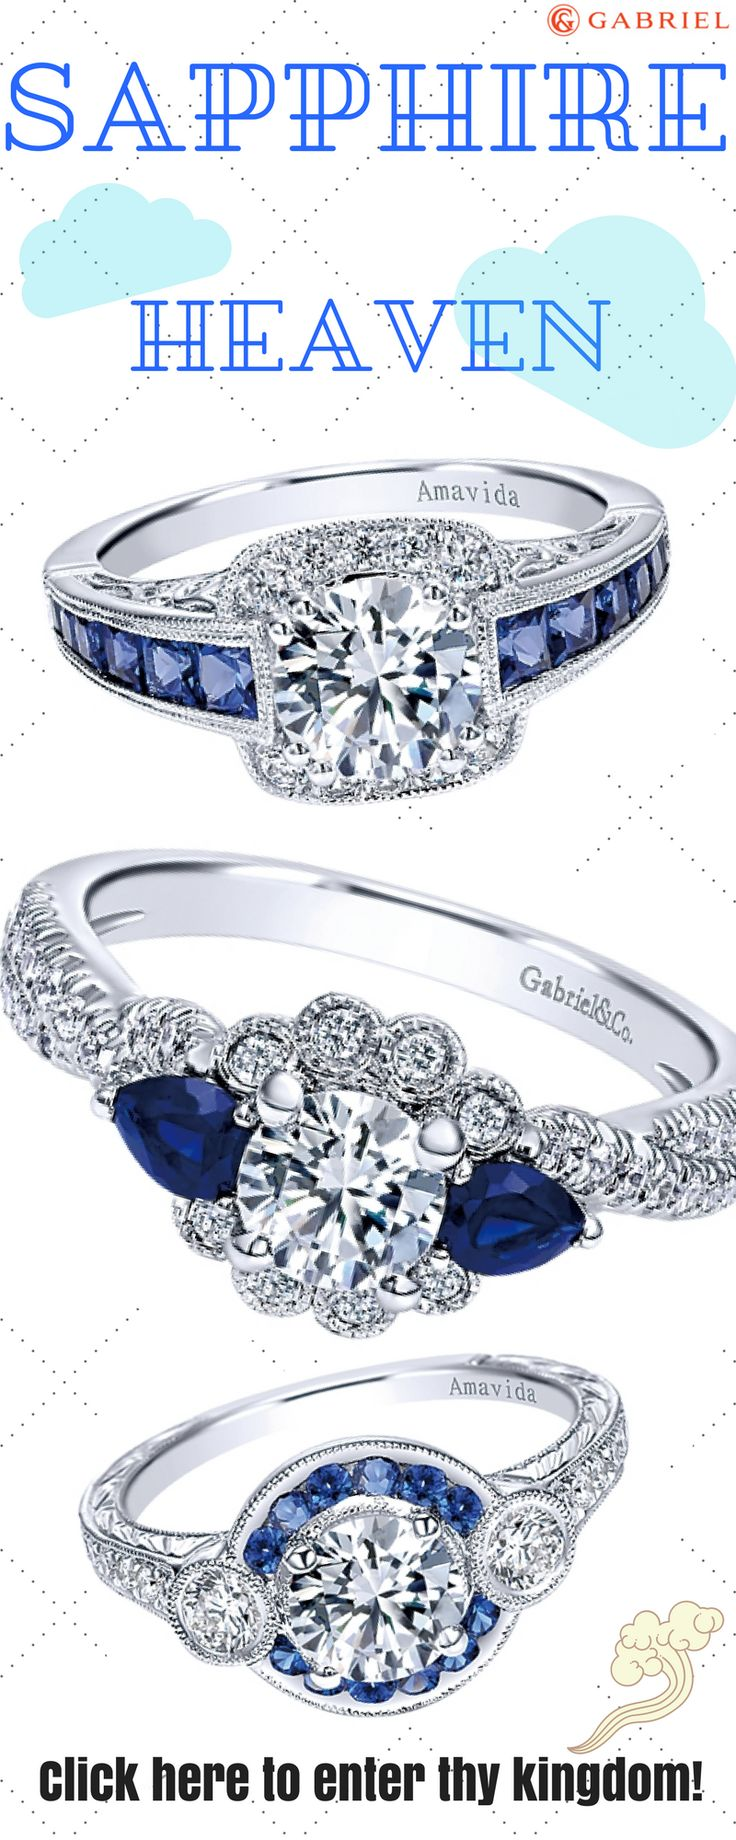 Did I just enter Sapphire Engagement Ring heaven? Yup, I think so! We have an assortment of sapphire rings that we think will match exactly what you're looking for. Show her that you love her with these classic rings. Oh. And sapphire is associated with the Royals- Kate Middleton and Princess Diana are both known for their sapphire engagement rings...so enter thy kingdom!